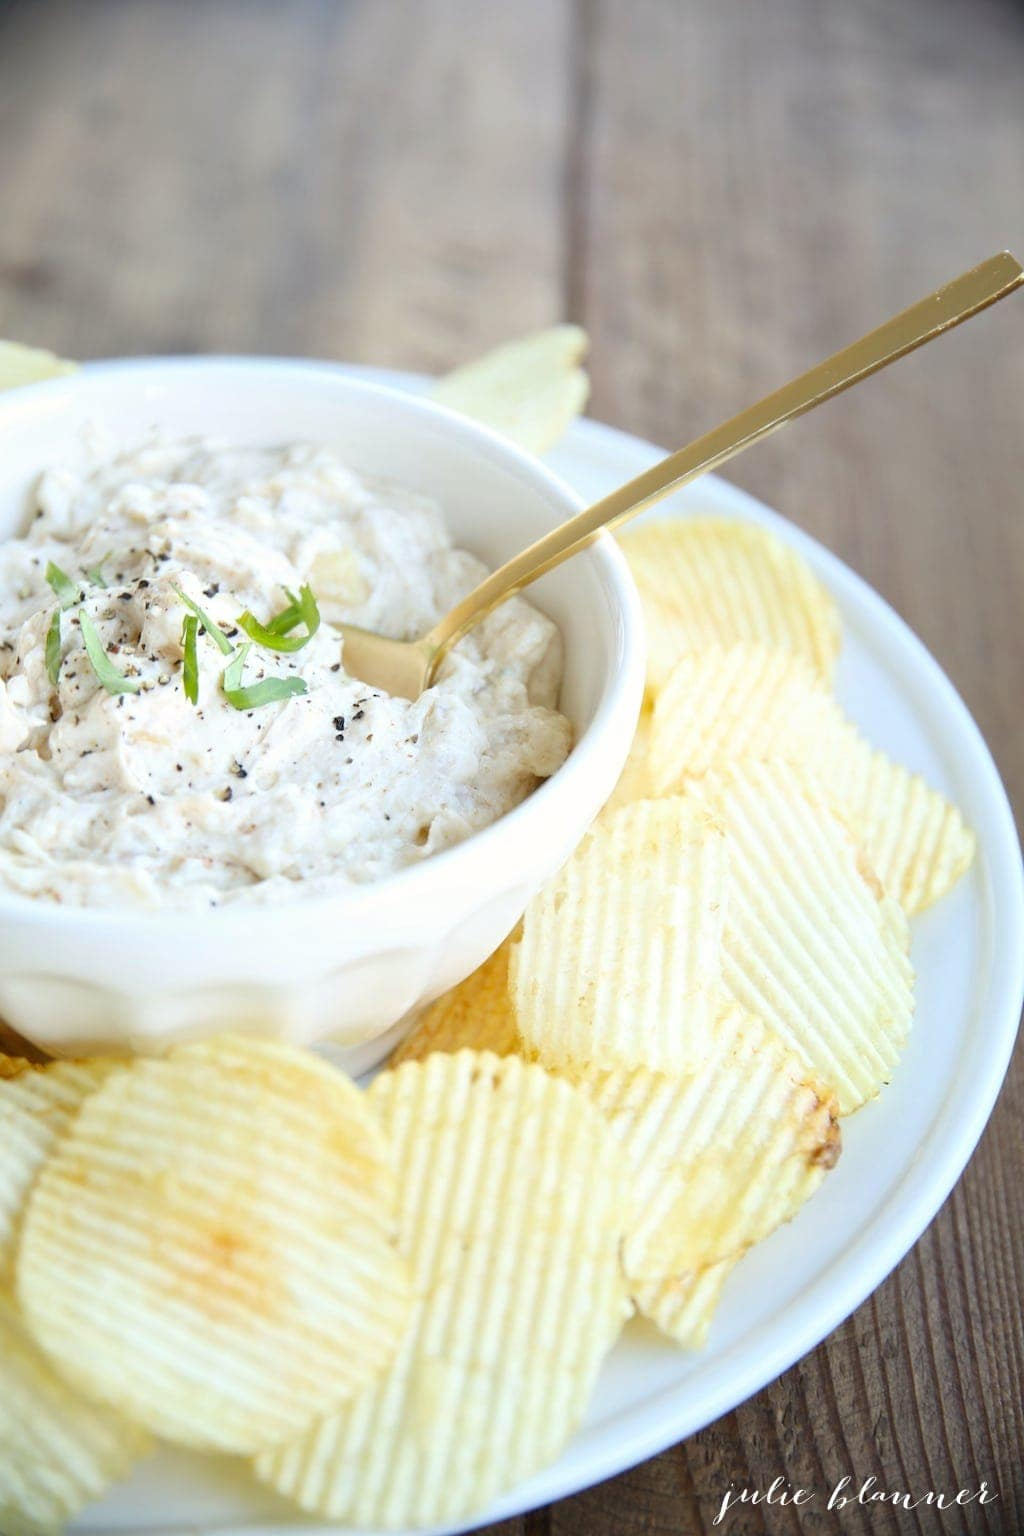 Easy game day dip recipes in 10 minutes or less